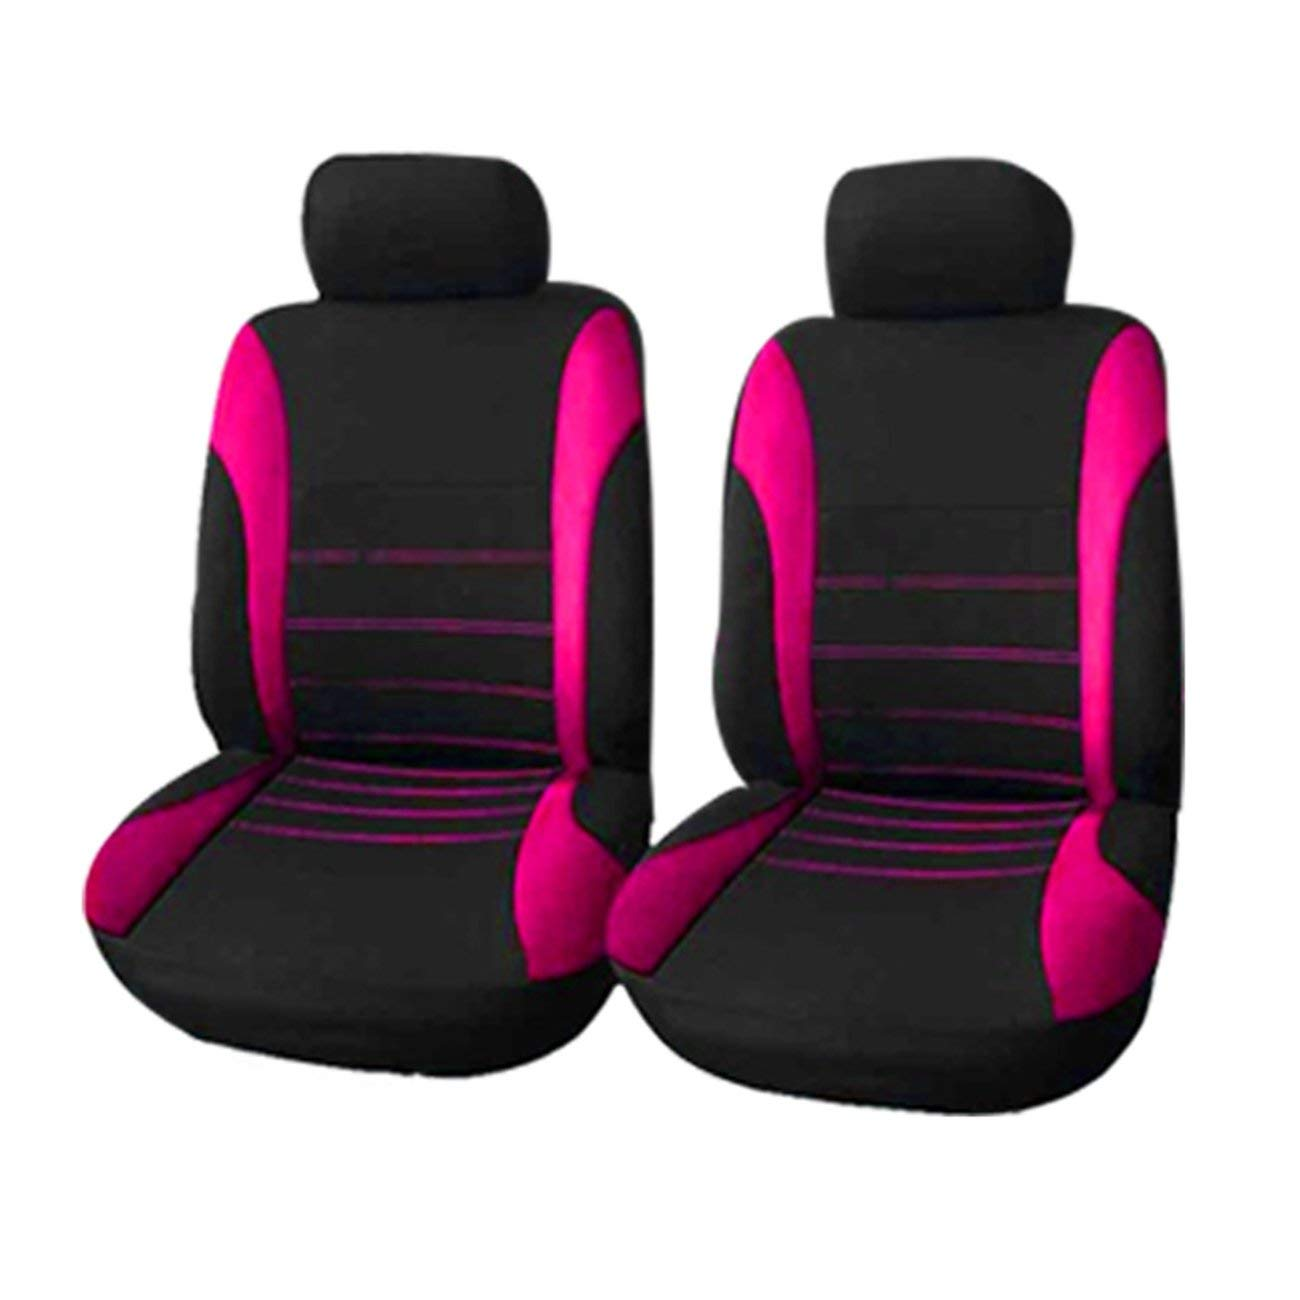 4pcs//Set Car Seat Cover Seat Protector Comfortable Dustproof Headrest Covers Front Seat Covers Universal for Auto Cars Rose red Panda